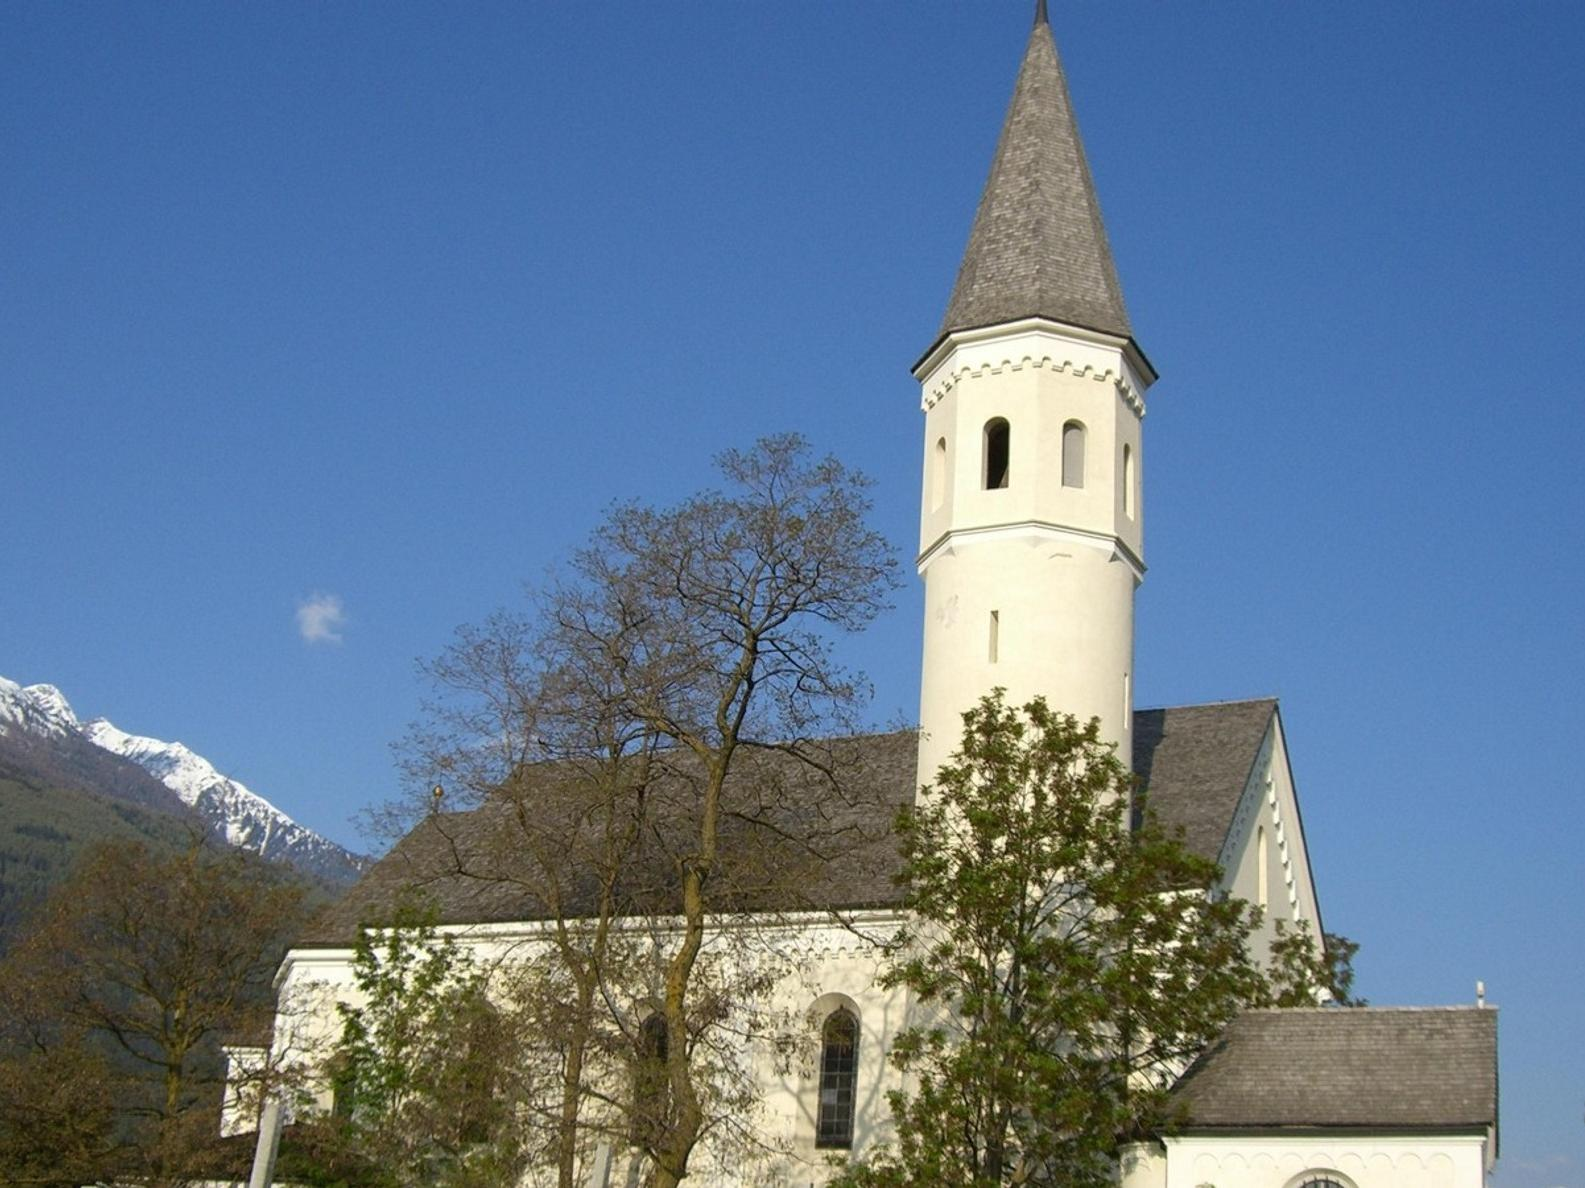 Church of Maria Lourdes, Lasa/Laas